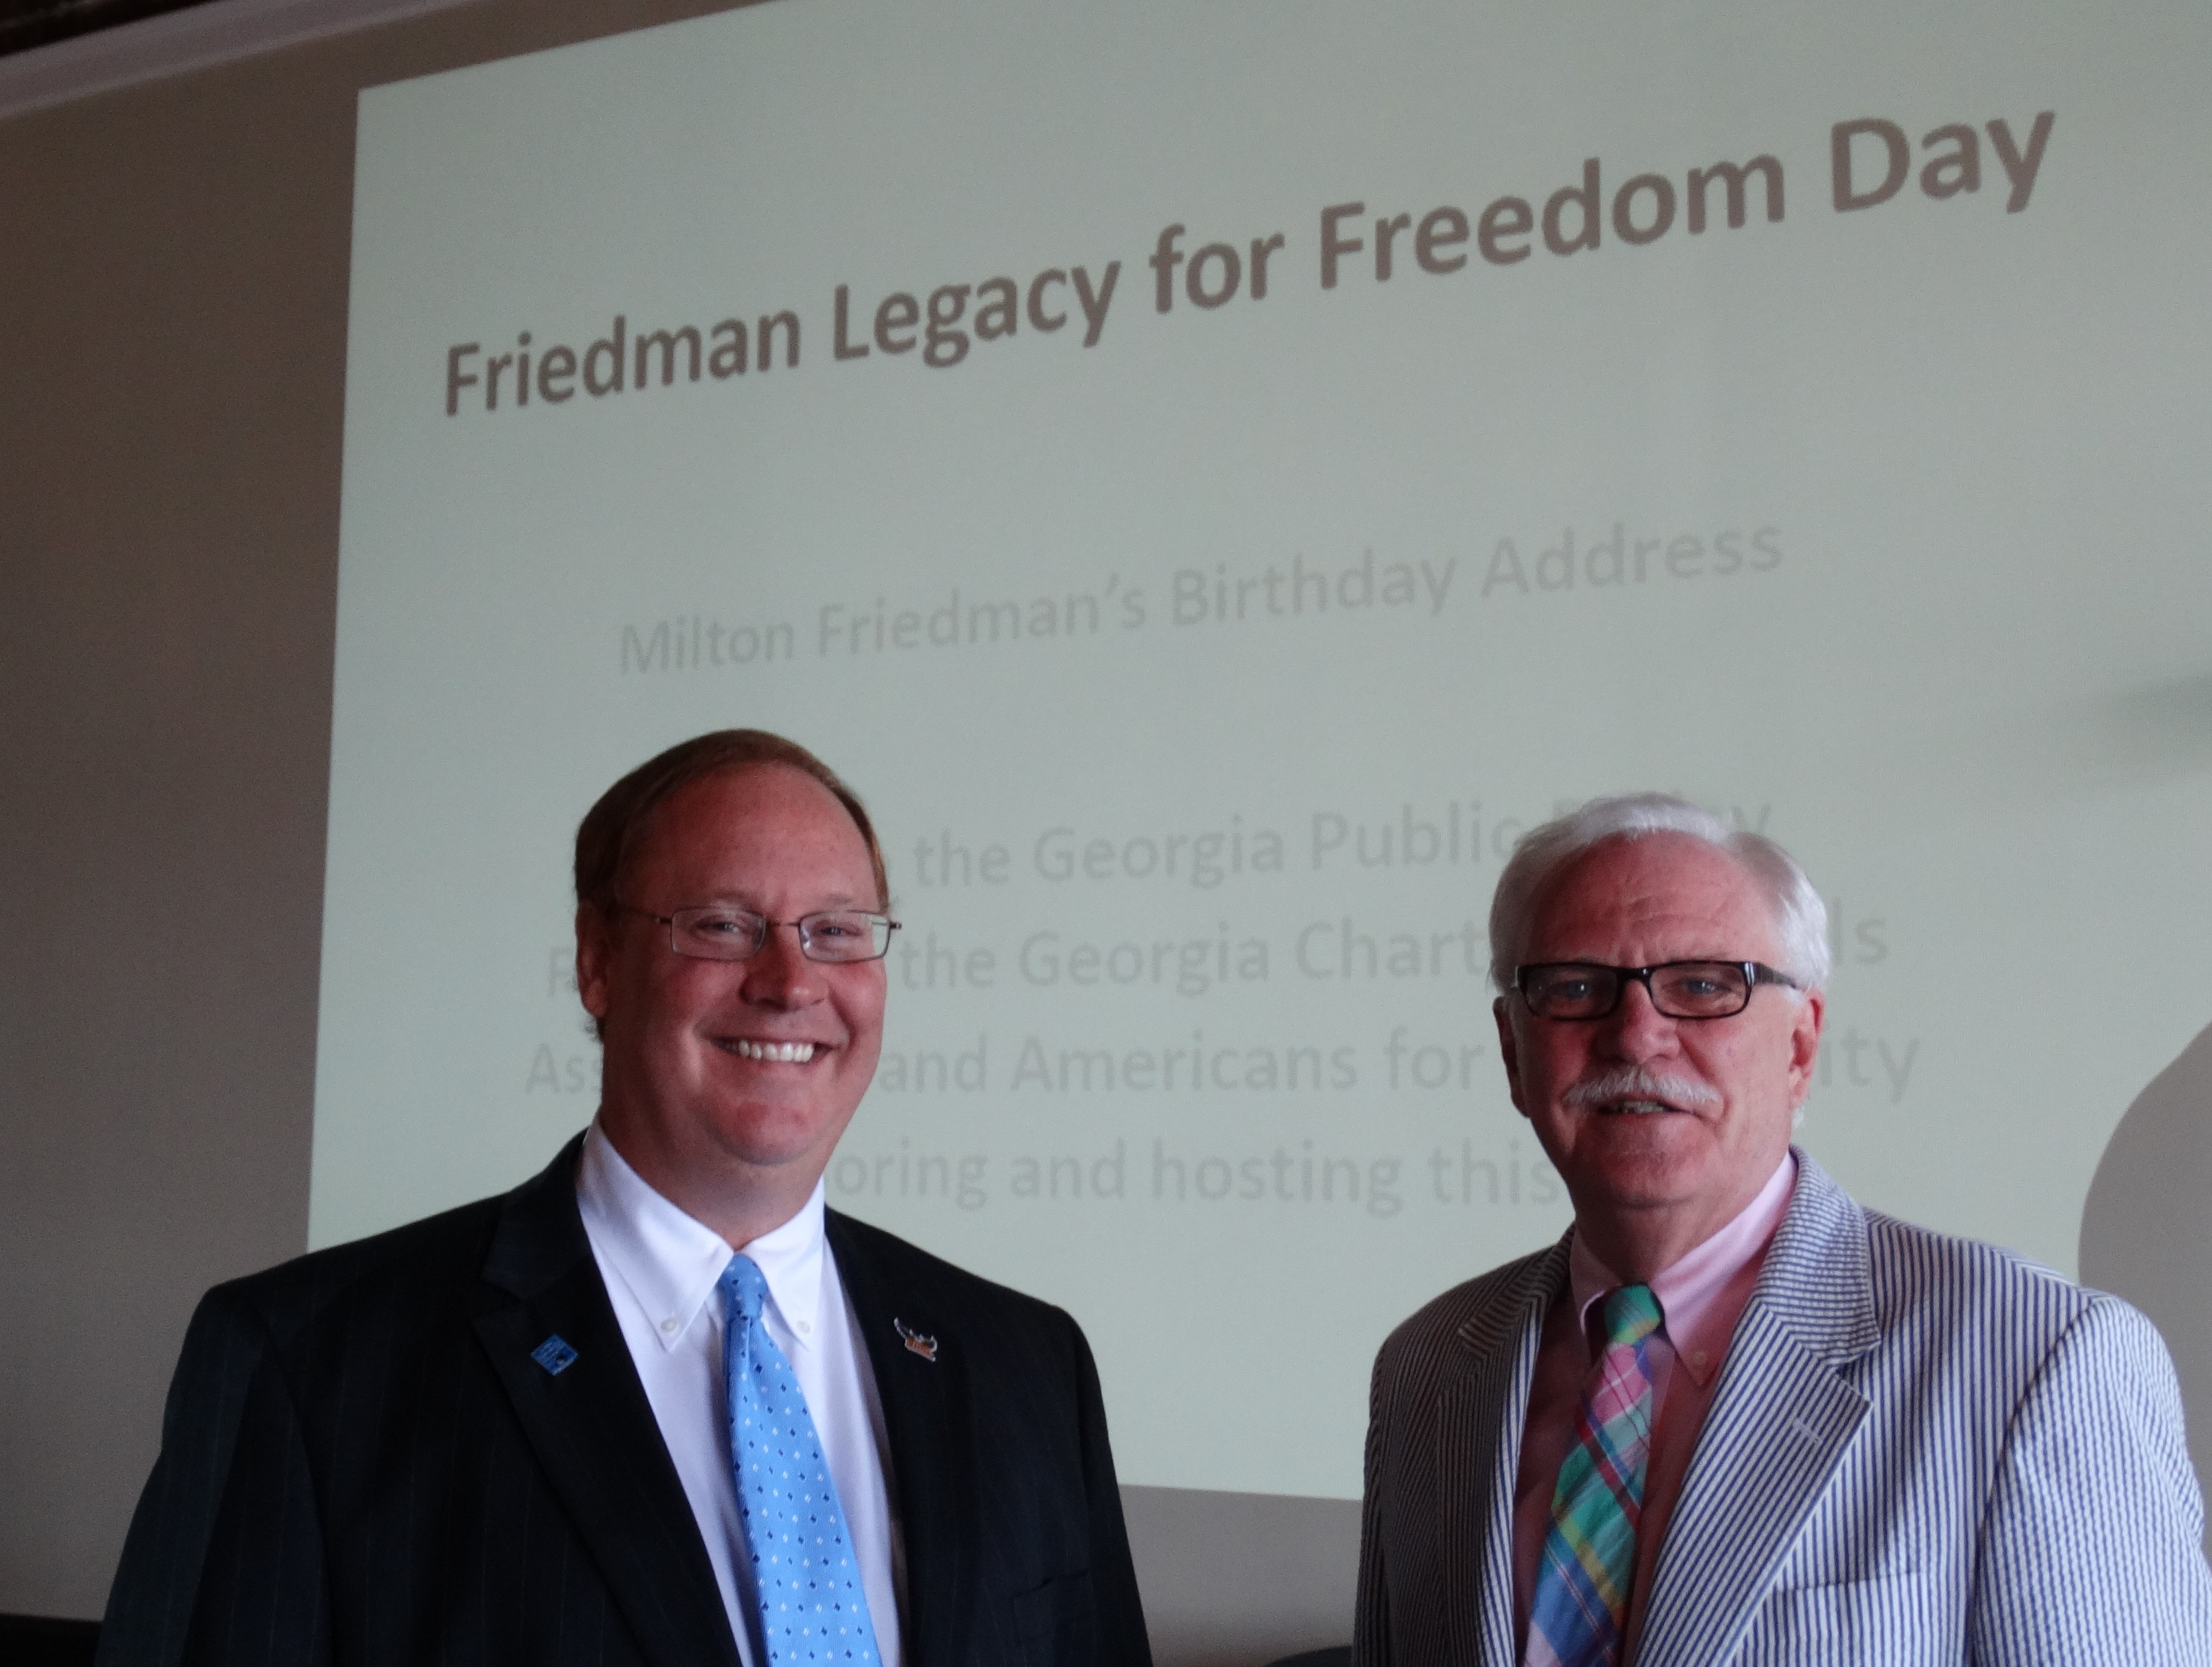 Keynote speaker Dr. Ben Scafidi catches up with John McRae, an attendee at the Georgia Public Policy Foundation Friedman Legacy for Freedom Day in Savannah on July 29.